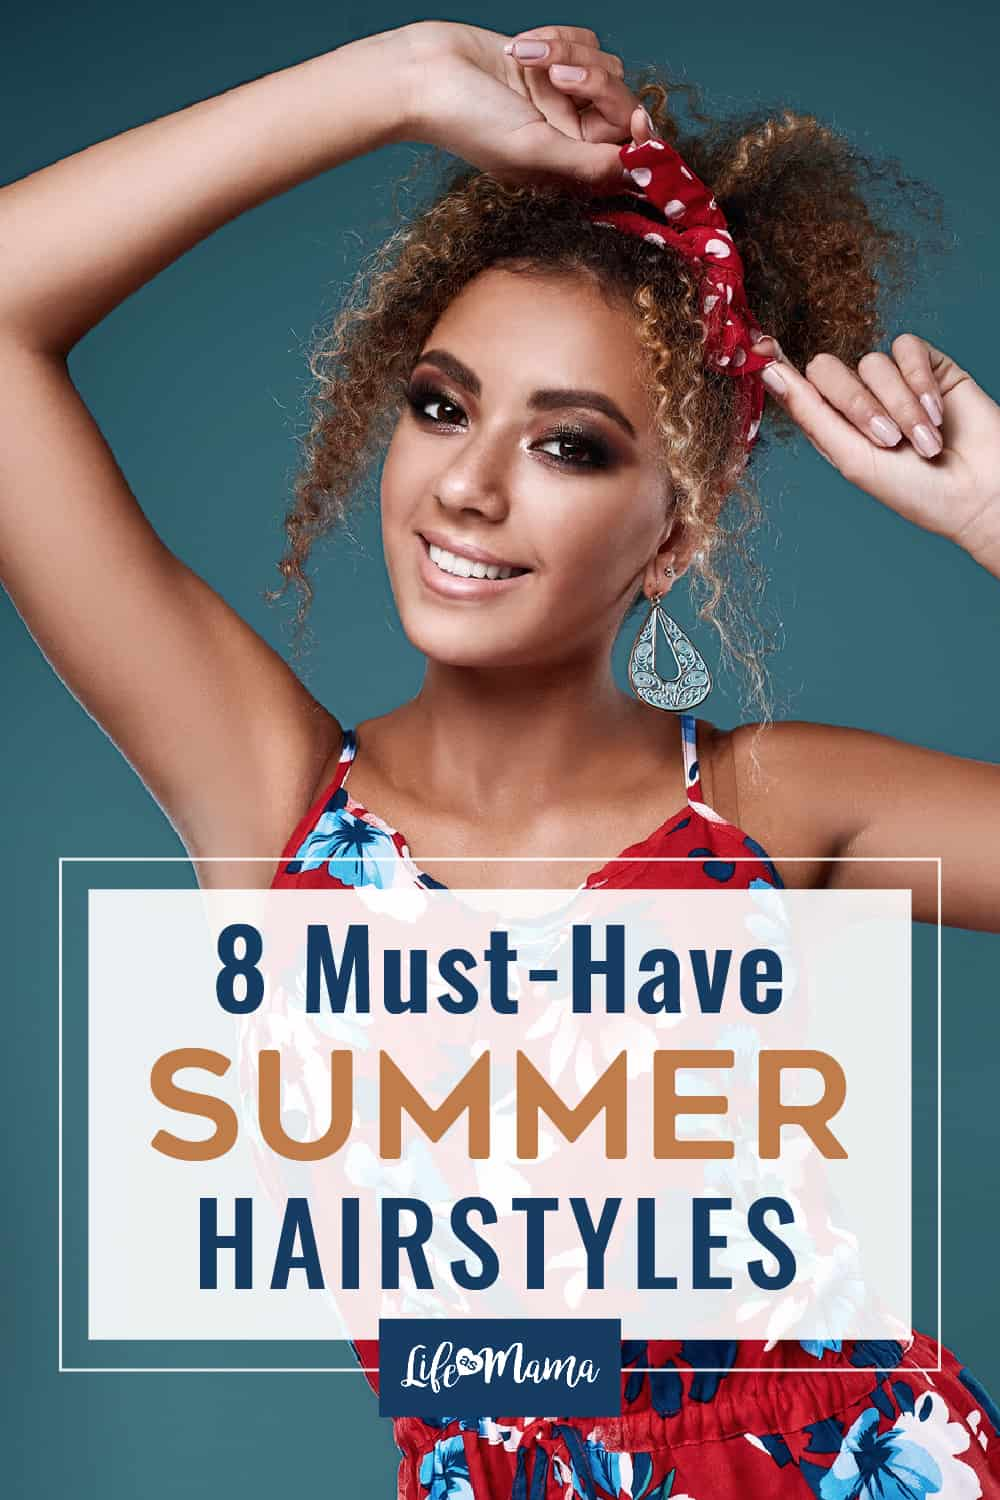 8 Must-Have Summer Hairstyles